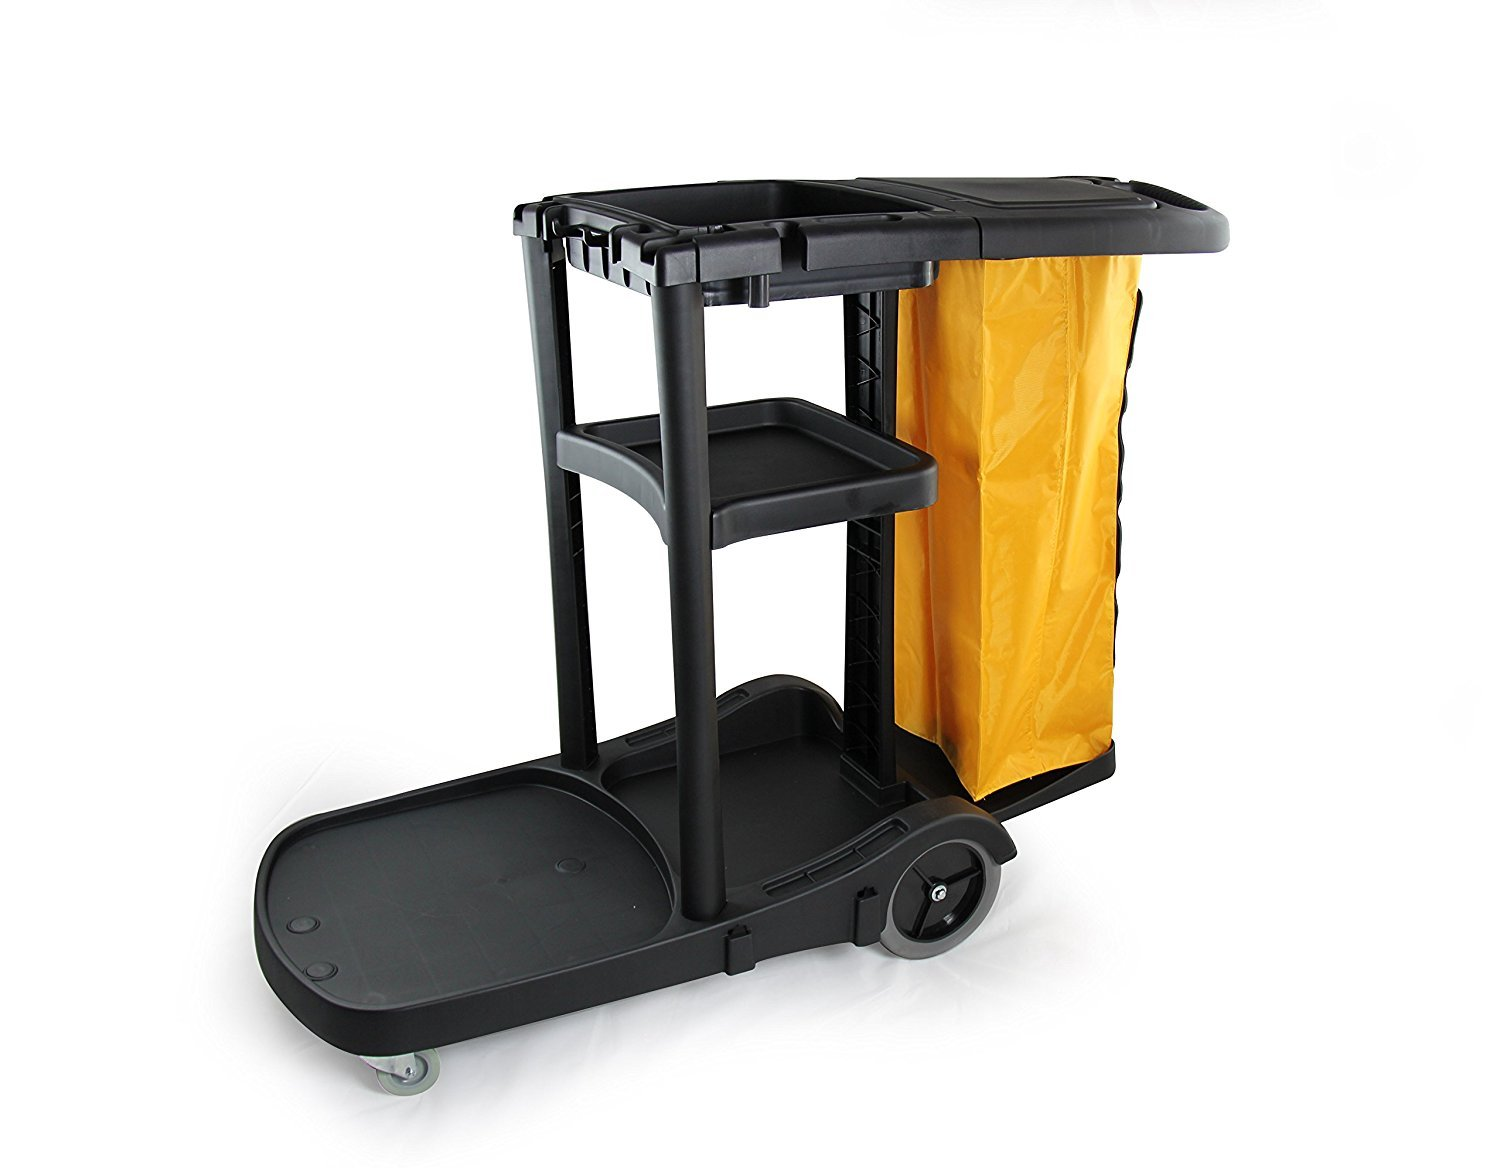 "Commercial Housekeeping cart Janitorial cart with cover And Vinyl Bag, L  52"" x W 22"" x H 40"": Amazon.com: Industrial & Scientific"